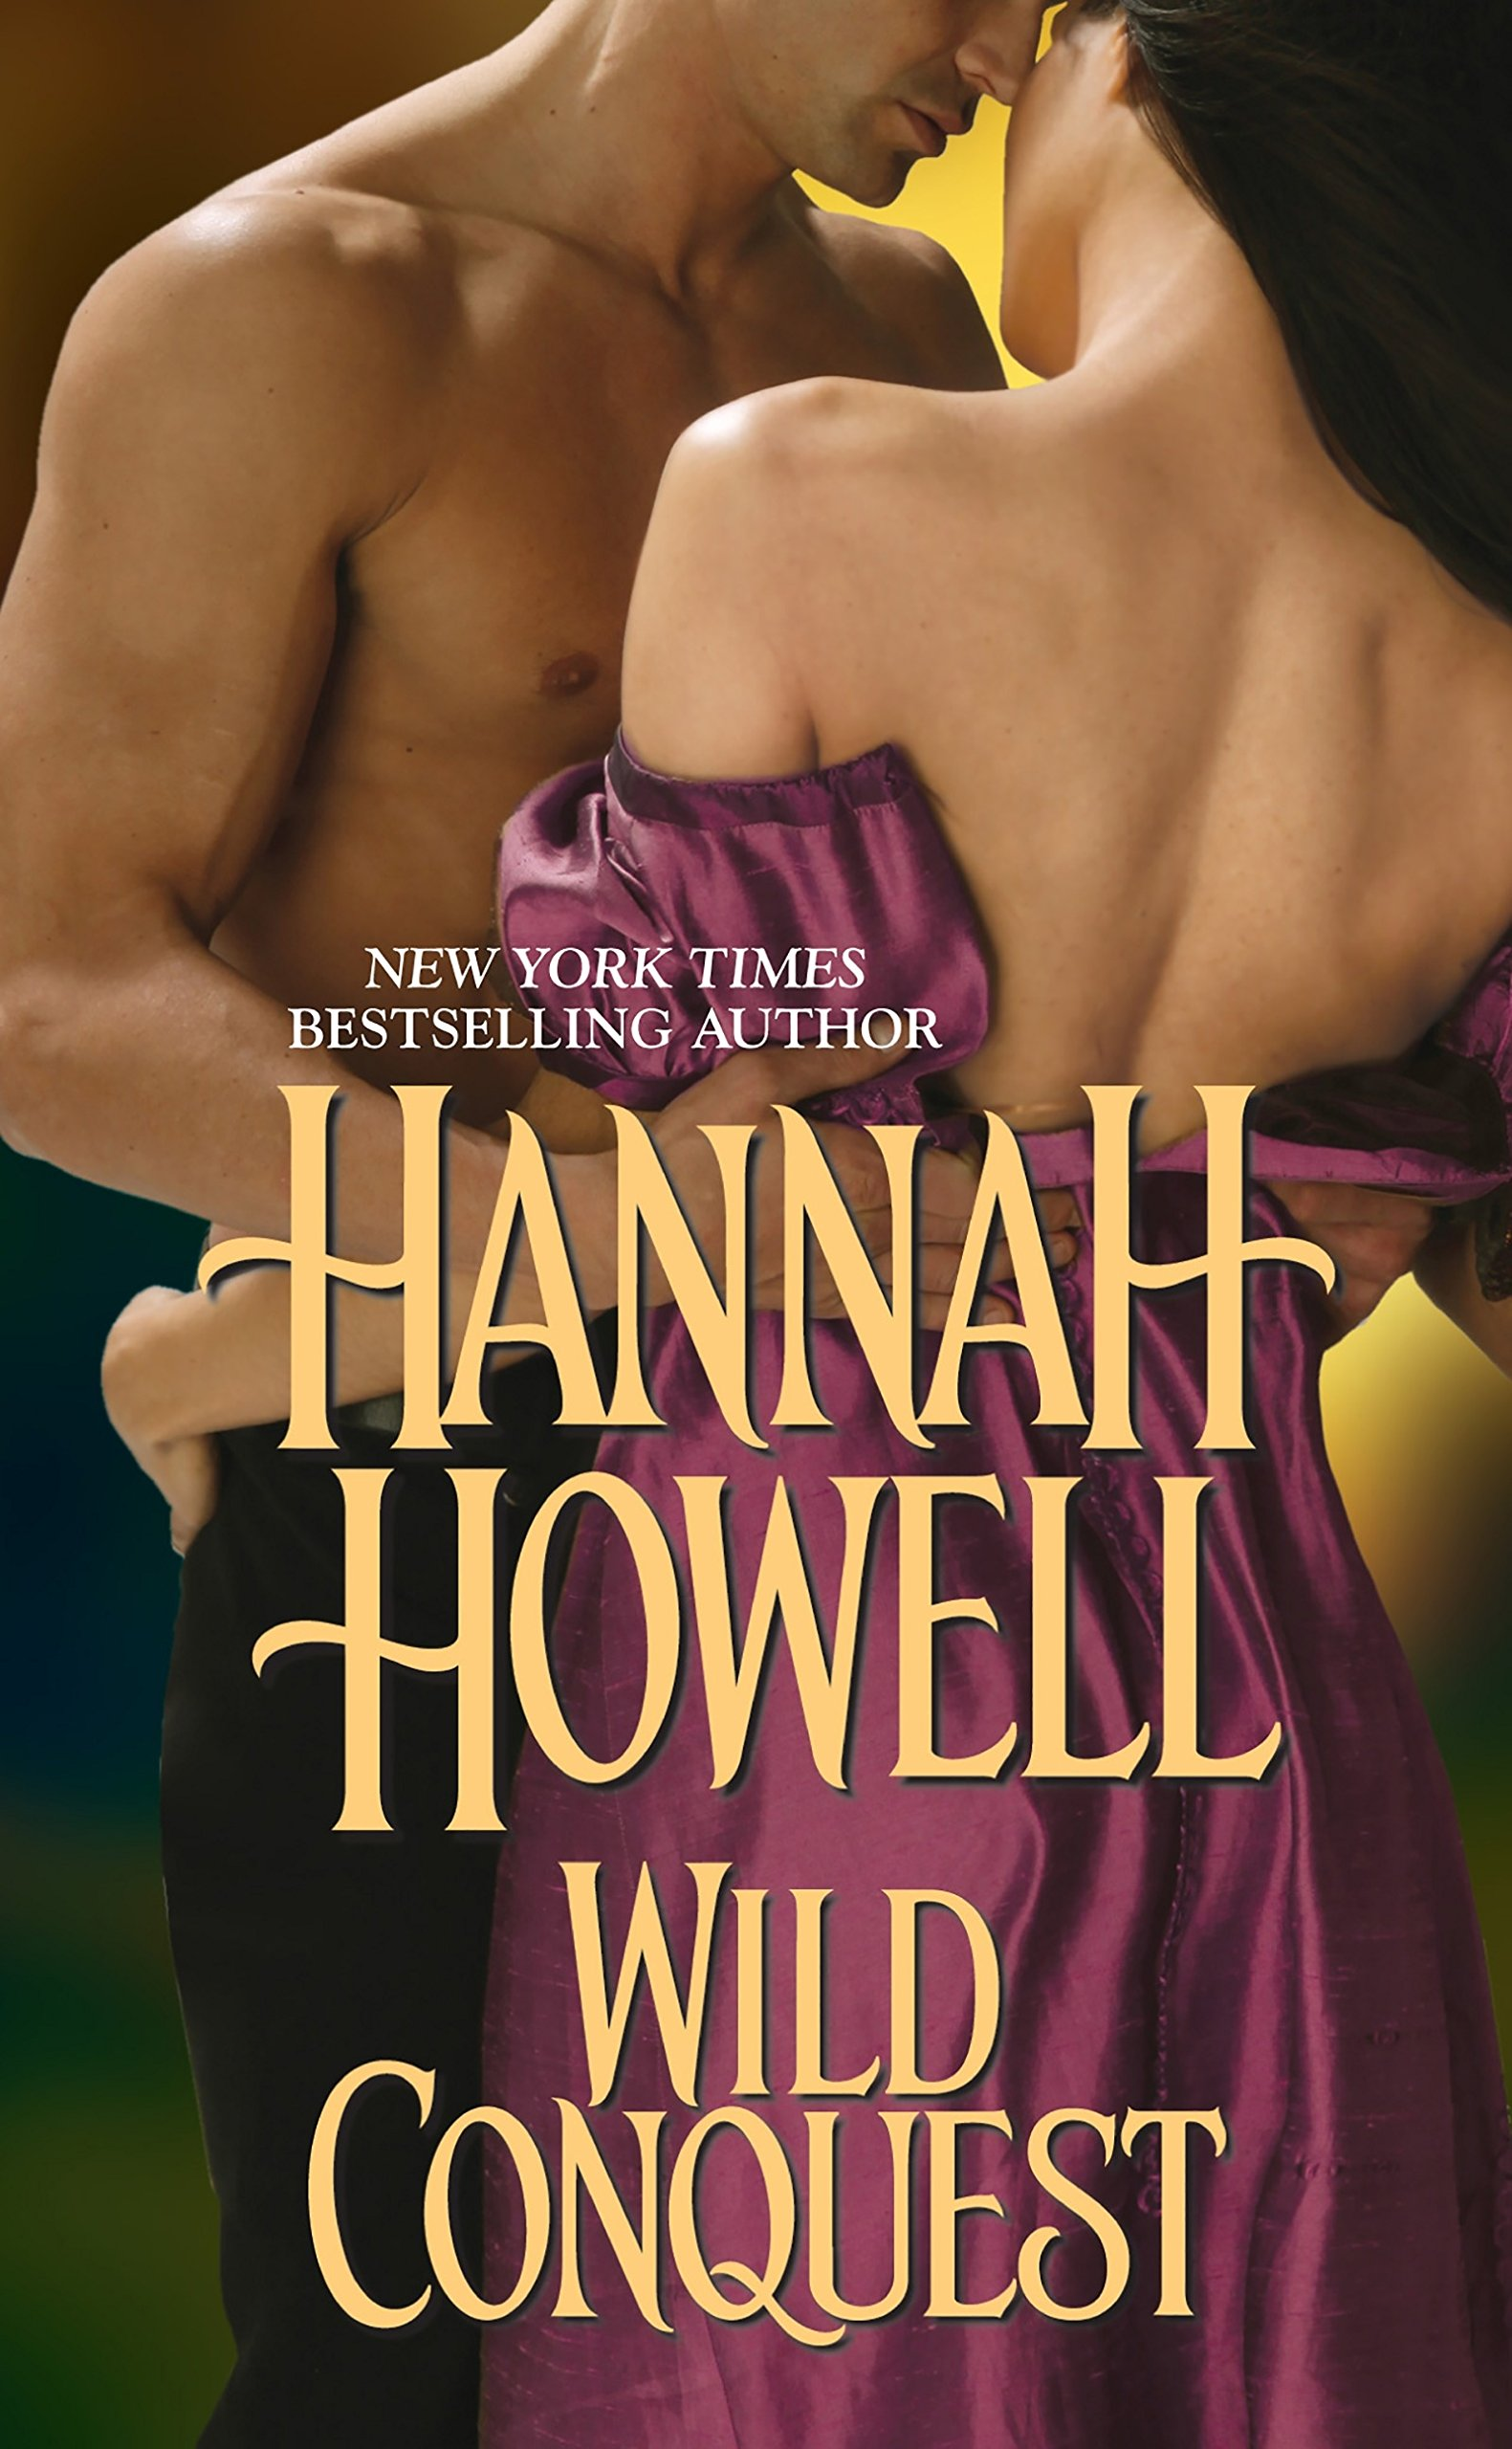 Wild Conquest by Howell, Hannah